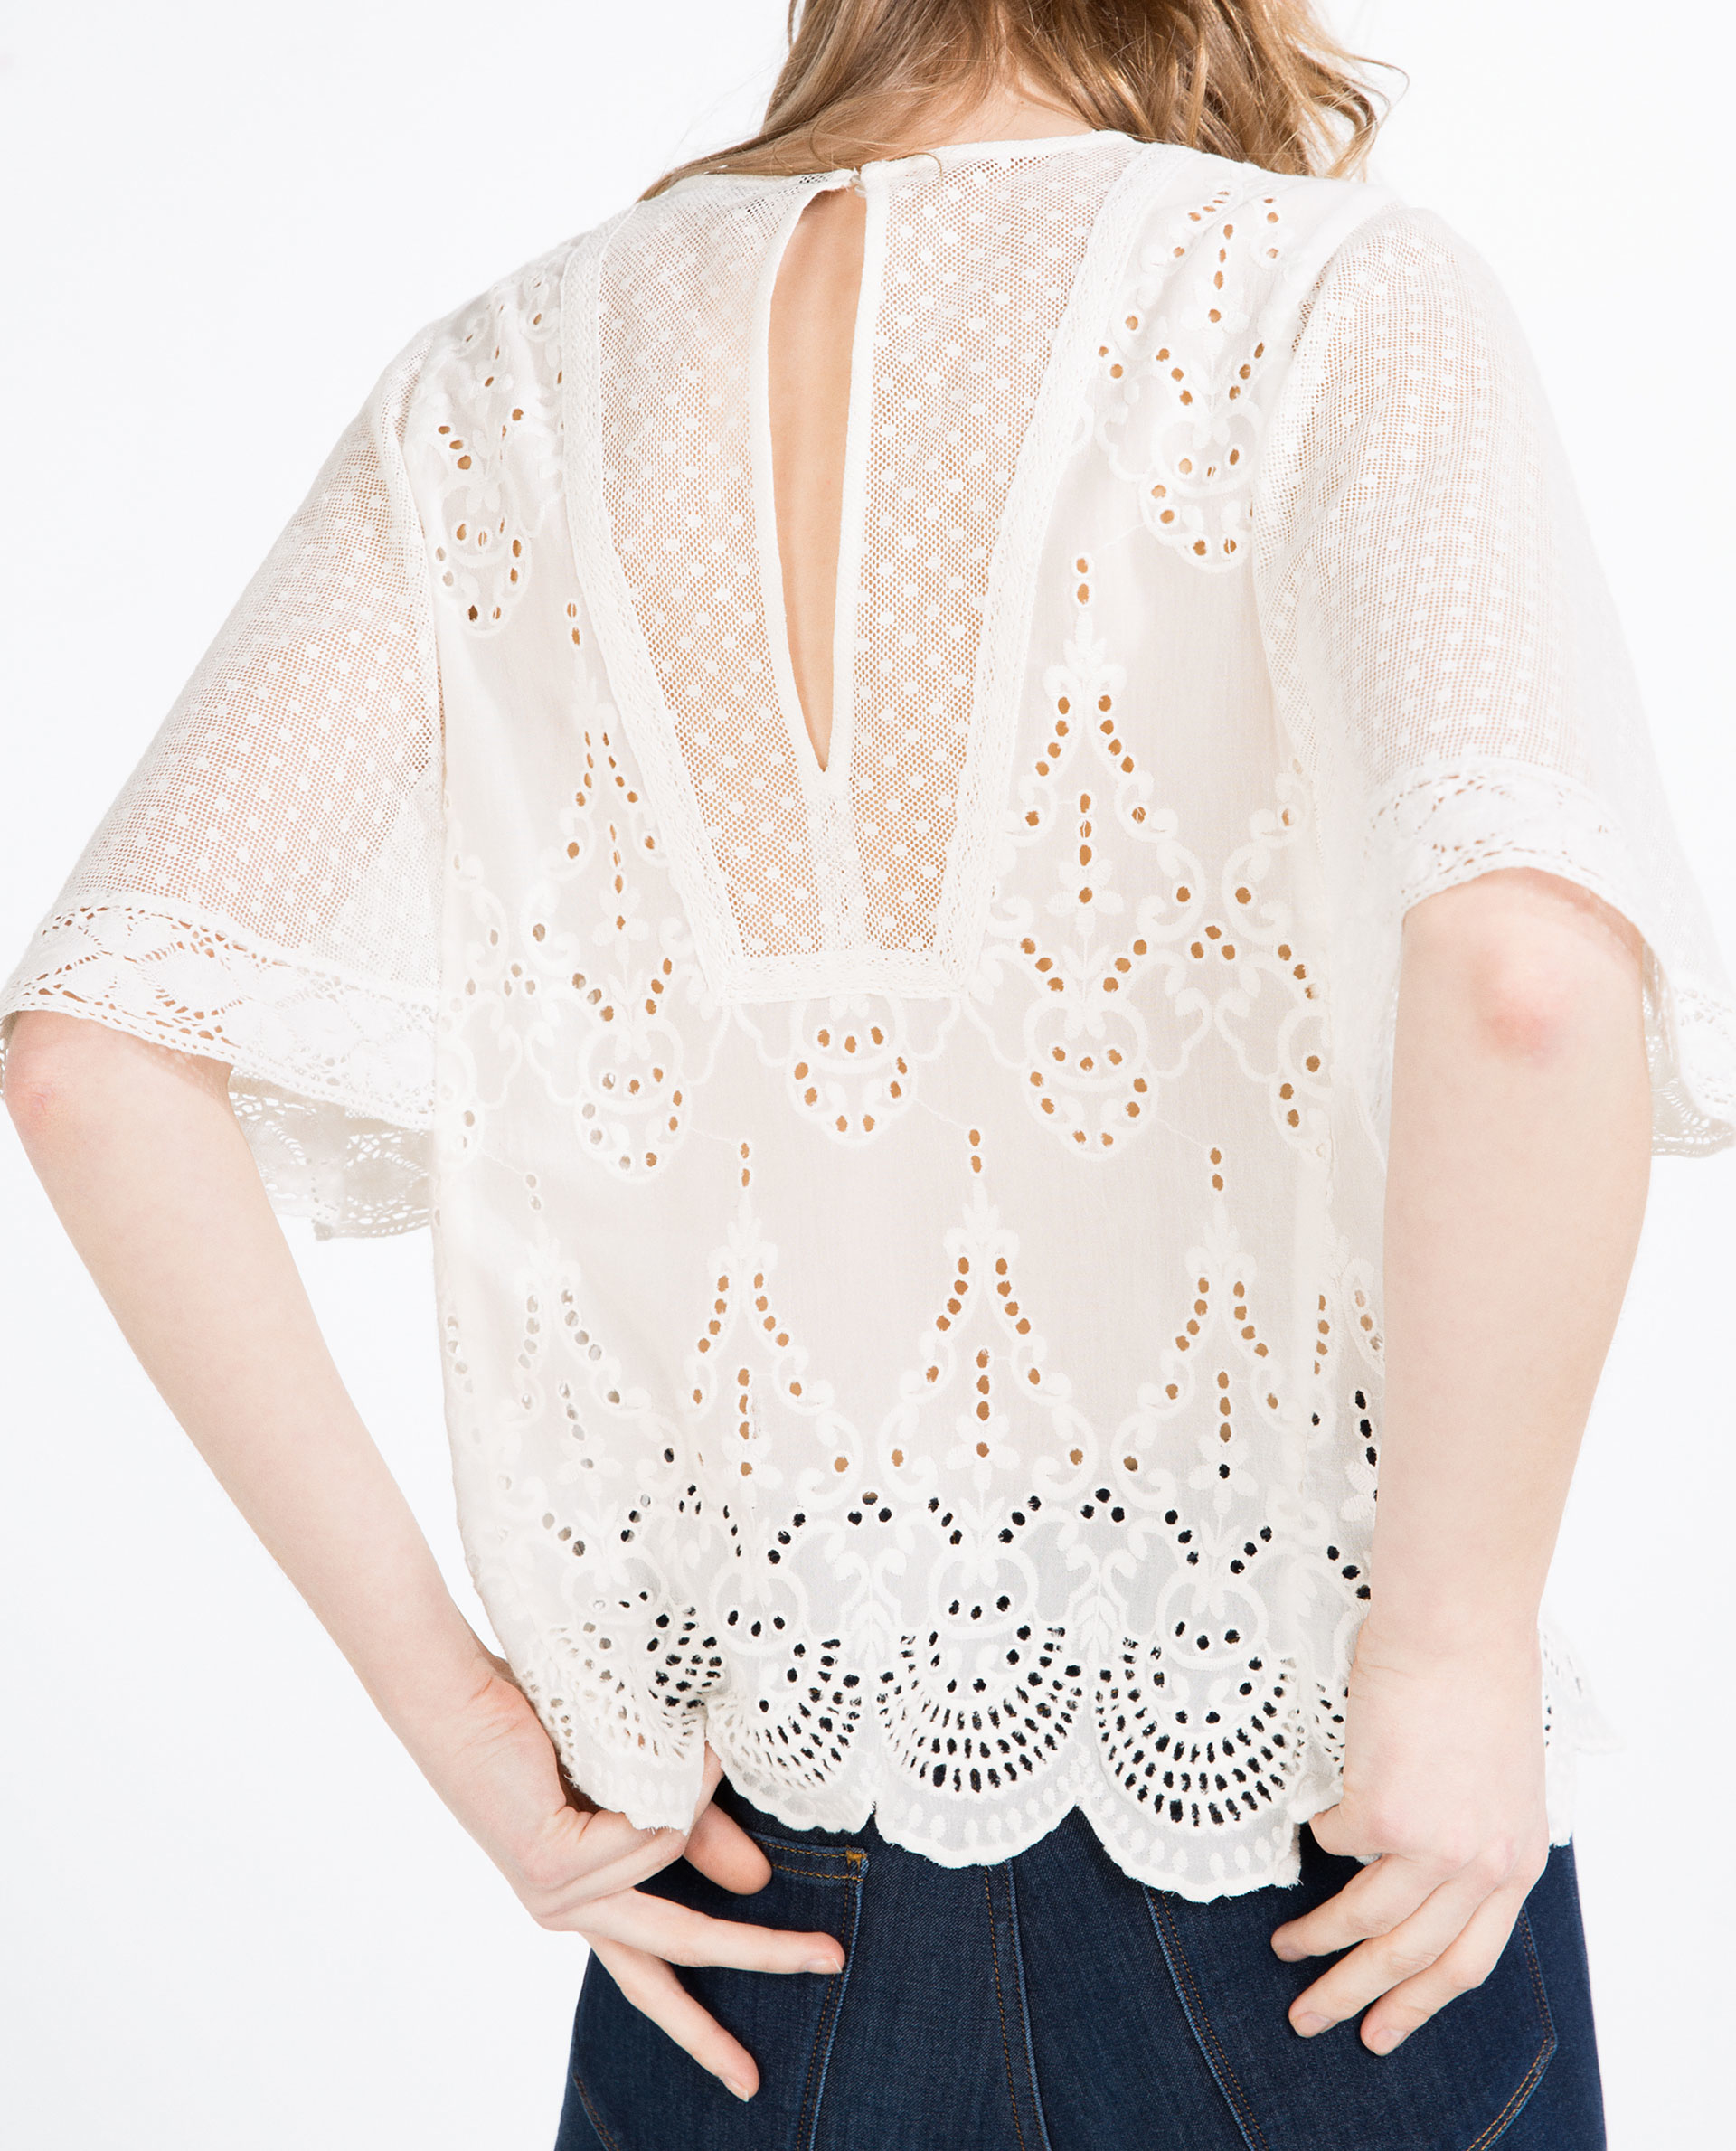 Zara Embroidered Blouse 42